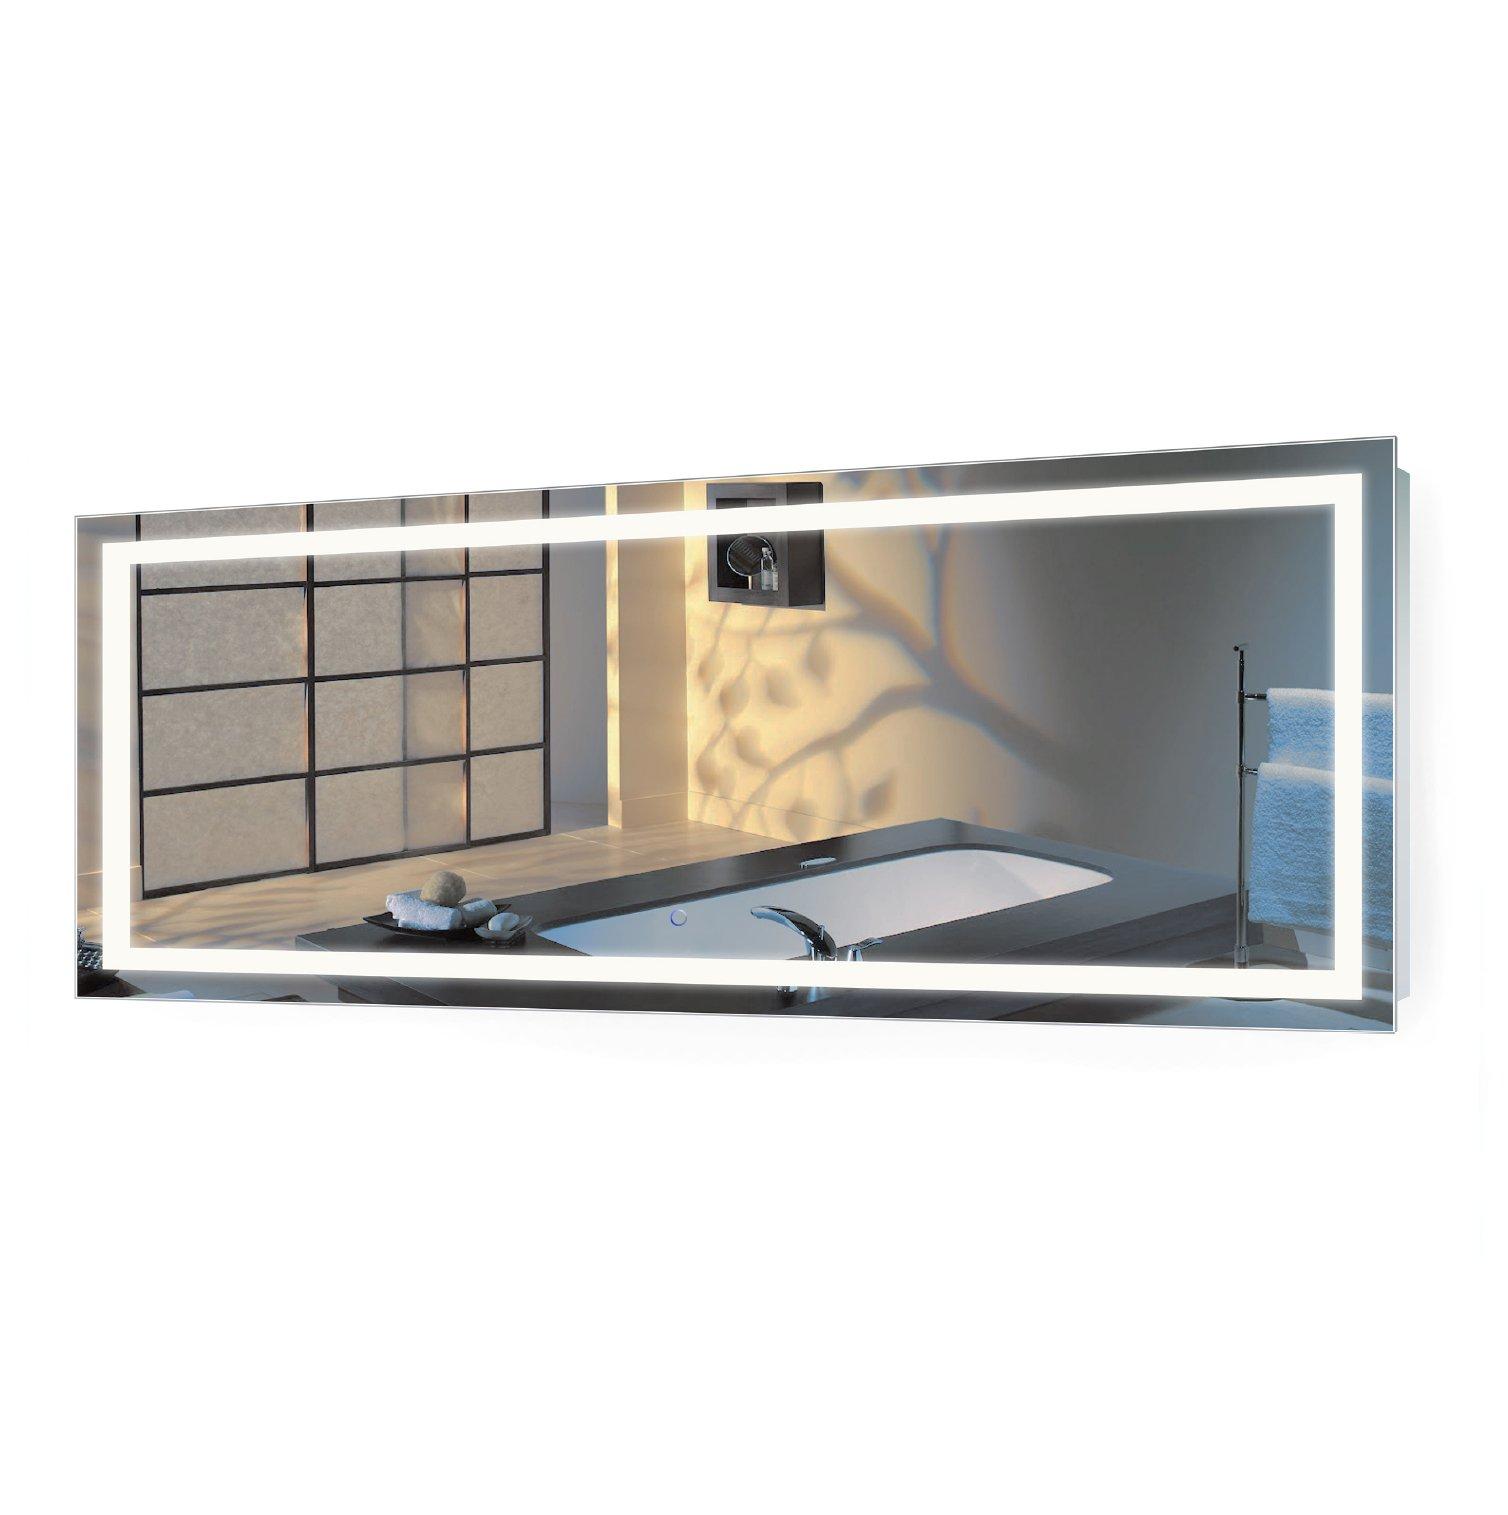 | Large 72 Inch X 30 Inch LED Bathroom Mirror | Lighted Vanity Mirror Includes Dimmer & Defogger | Wall Mount Vertical or Horizontal Installation |